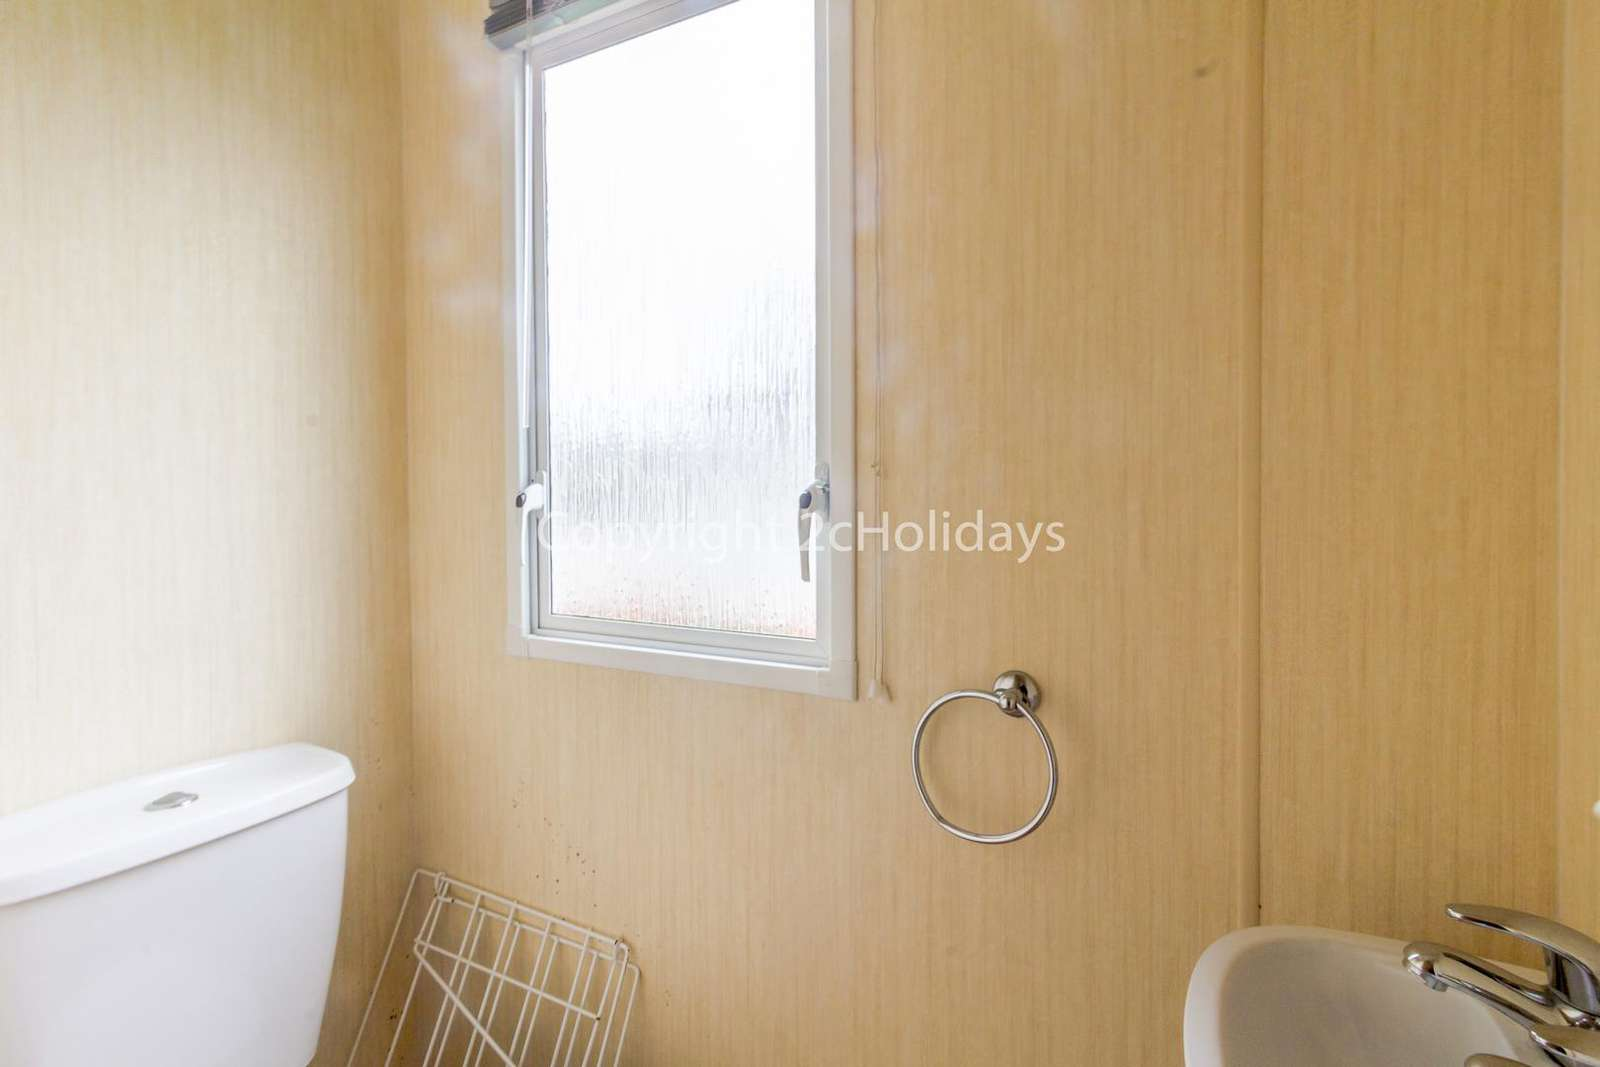 We ensure that all our holidays homes are cleaned to a high standard